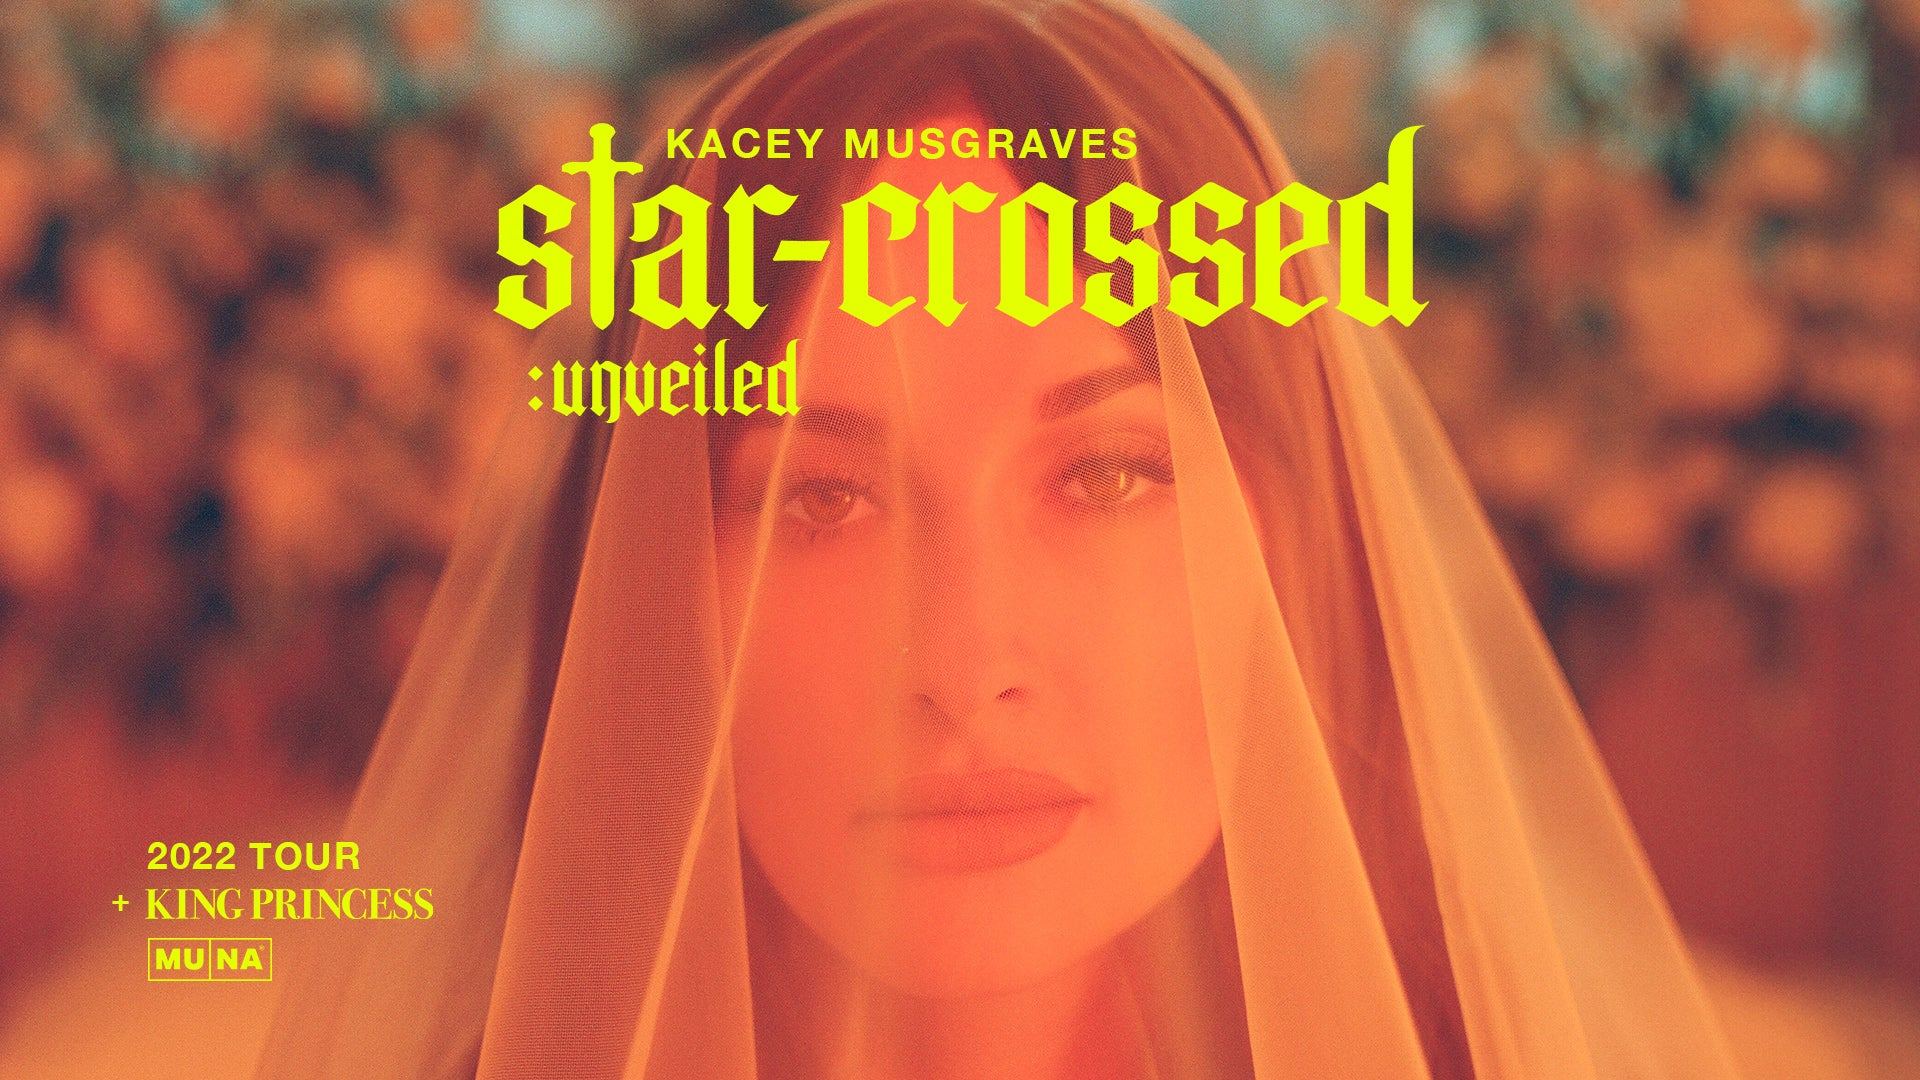 More Info for Kacey Musgraves | star-crossed: unveiled